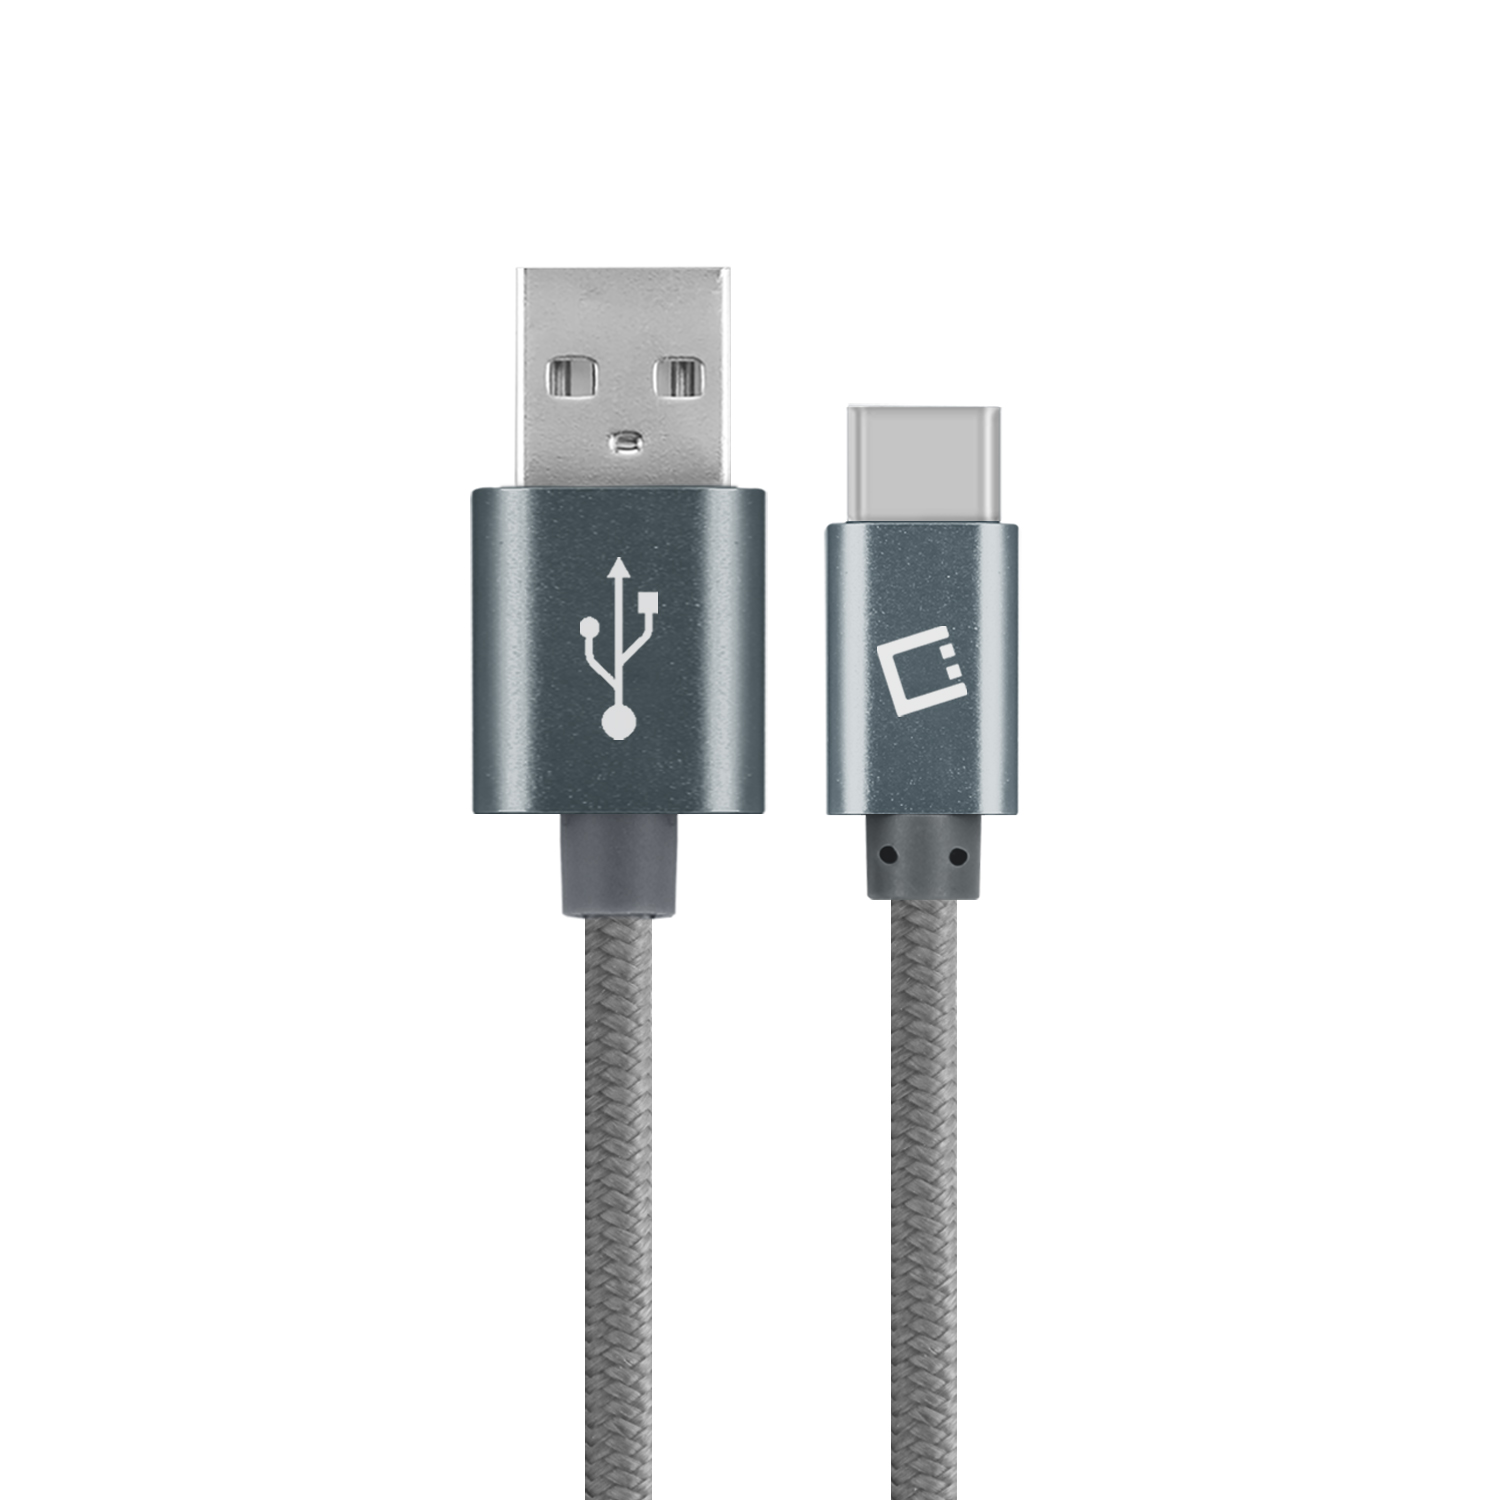 ZTE Blade V8 Pro USB Type-C To Type-A Braided Data Power Cable Grey 6ft Braided